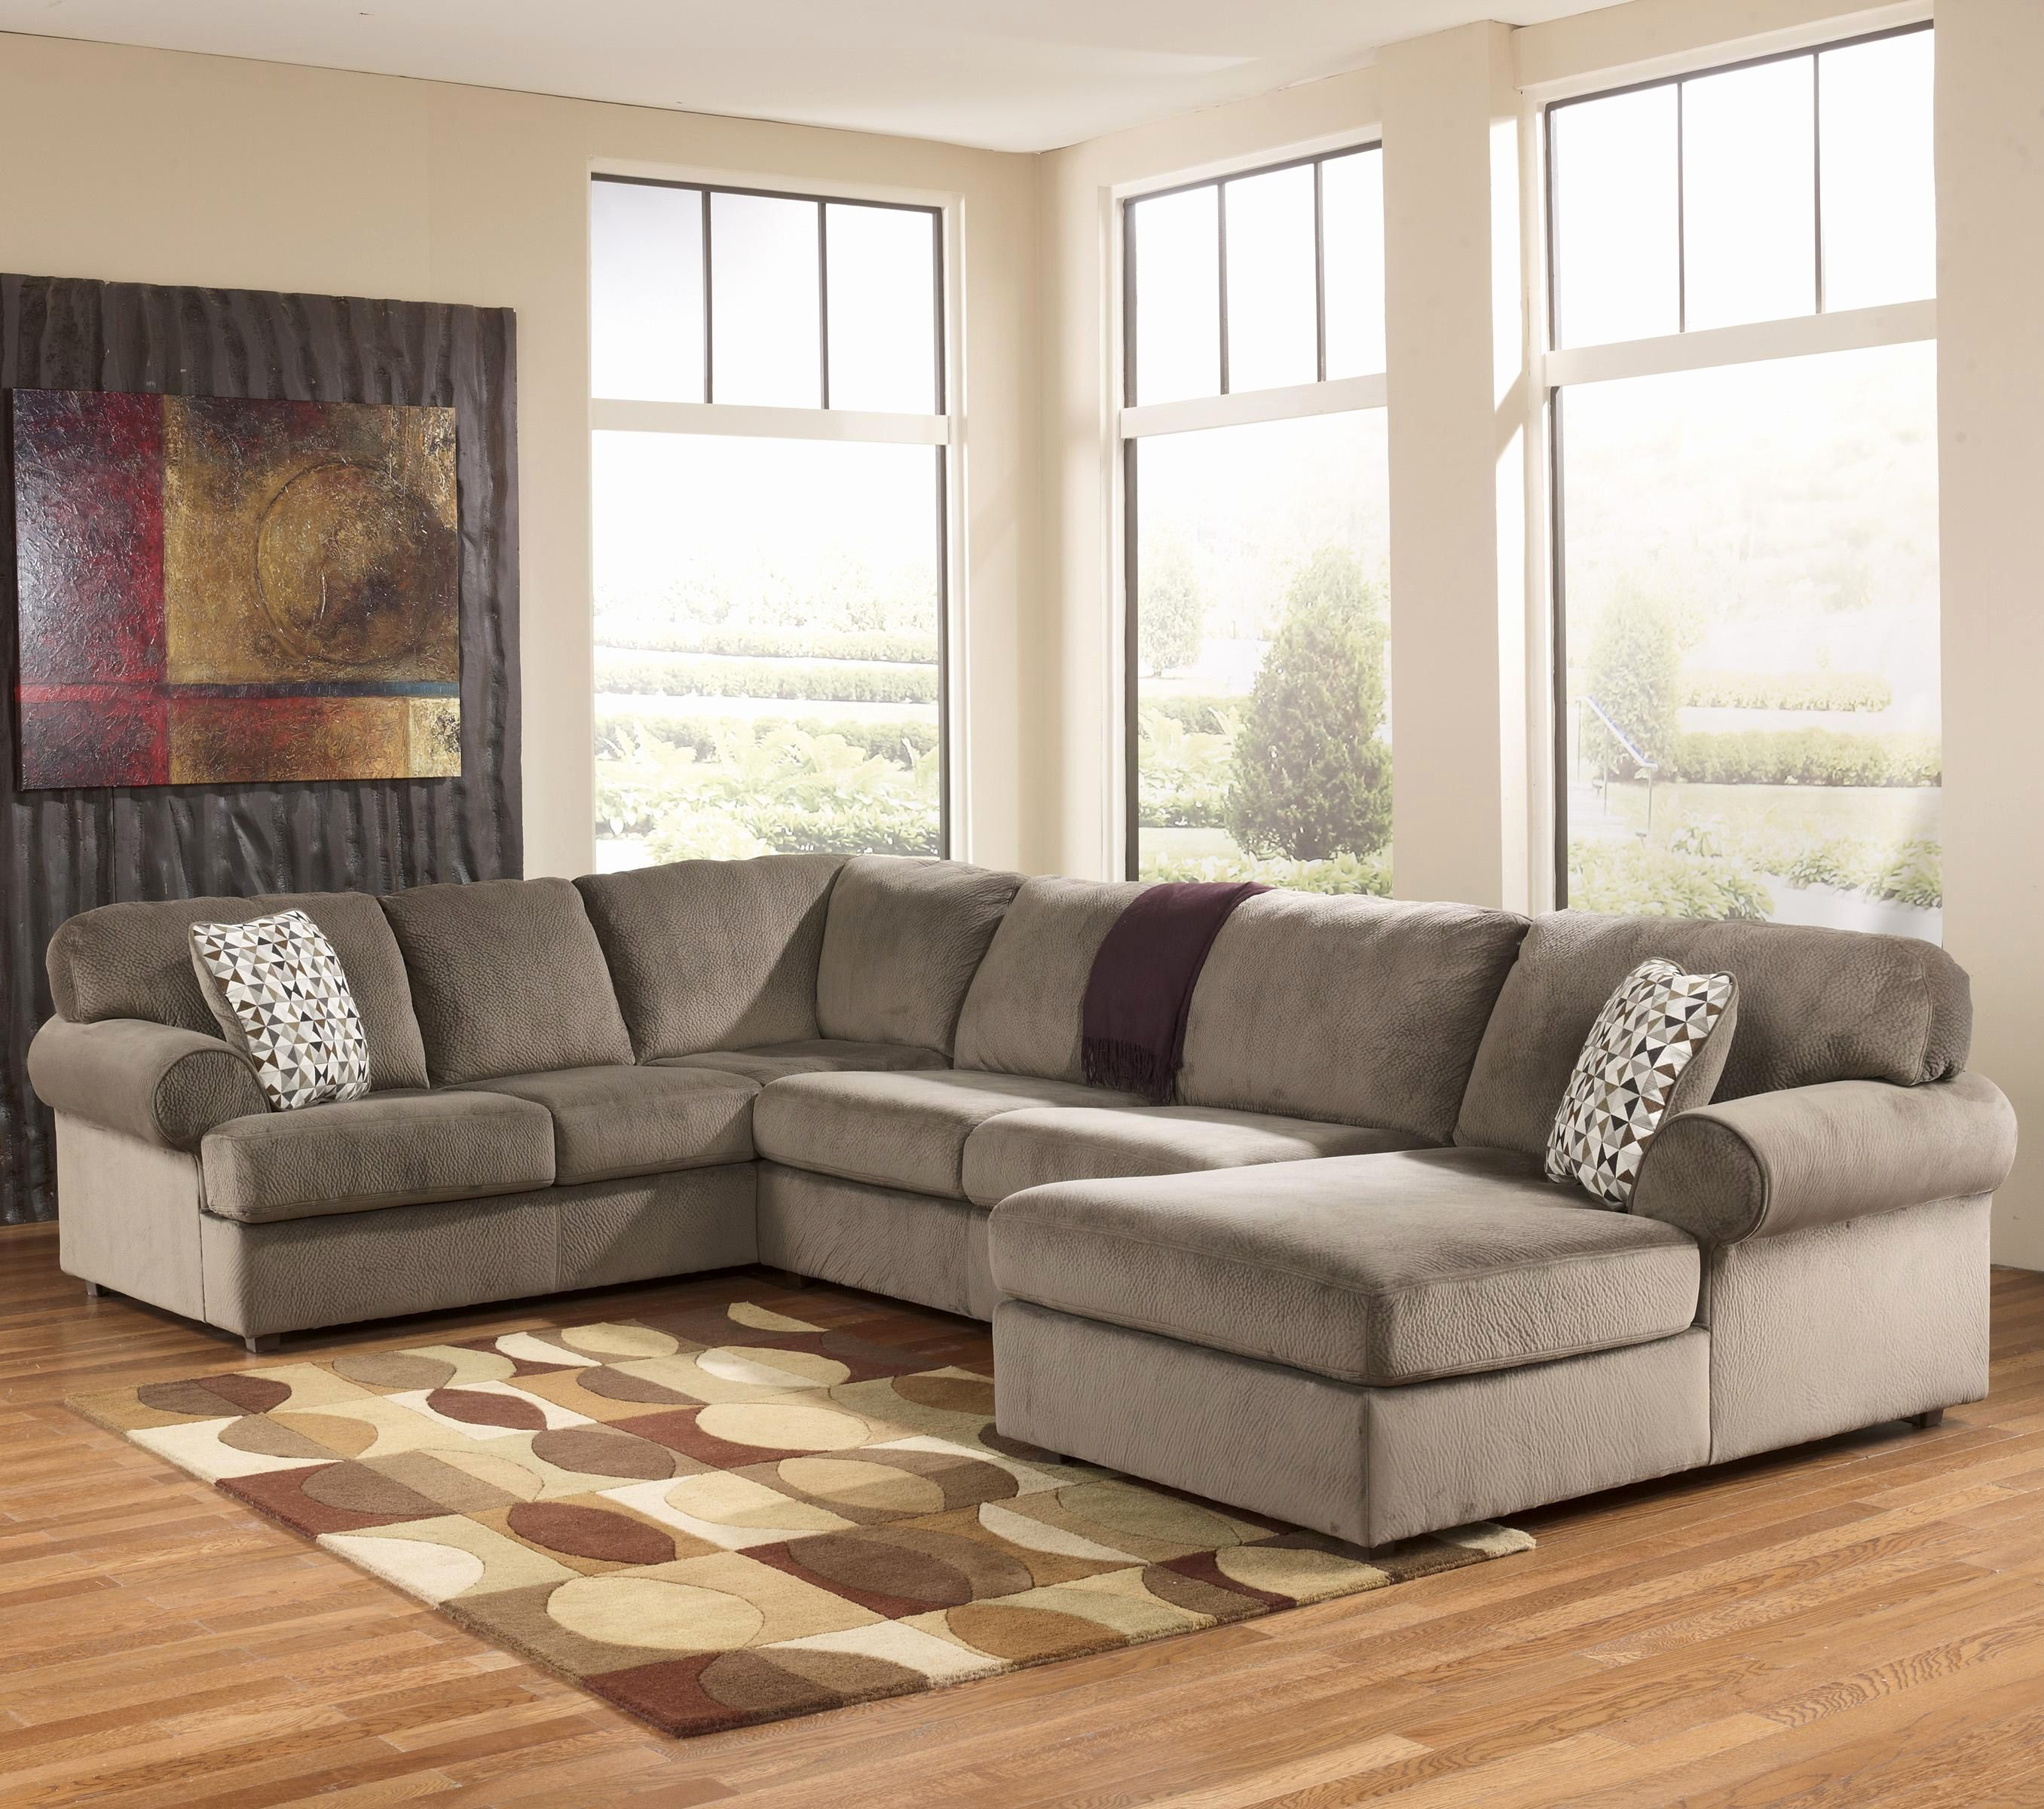 Awesome Gray Sectional Sofa Ashley Furniture Photographs Gray